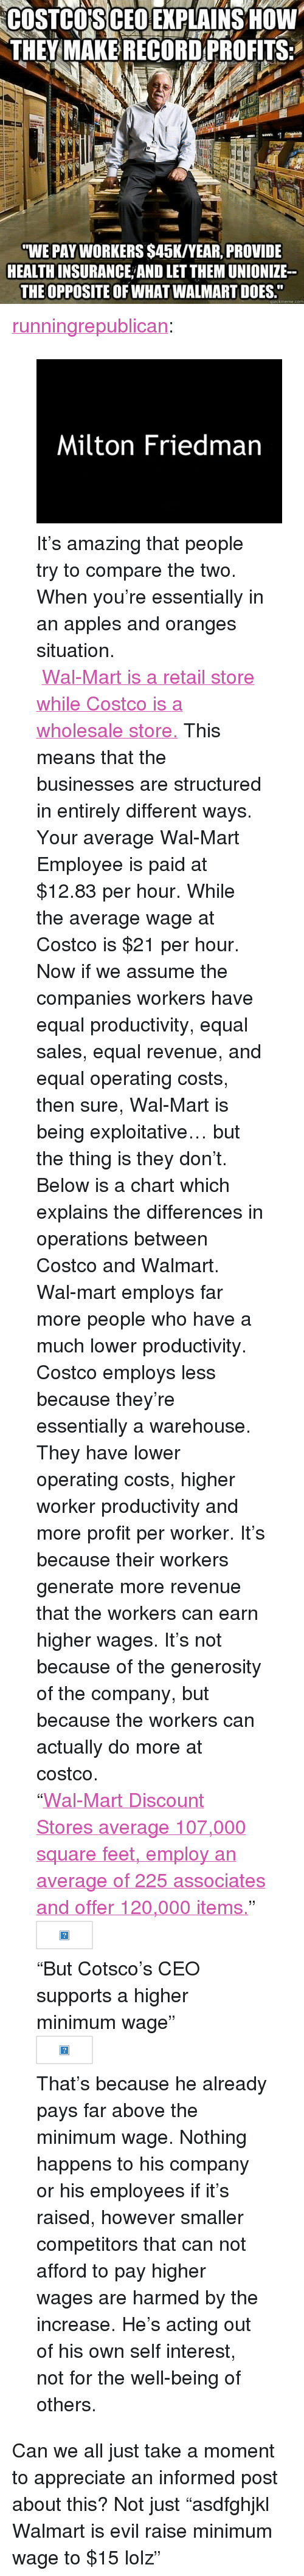 COSTCOSCEO EXPLAINSHOW THEYMAKE RECORDPROFITS WE PAY WORKERS